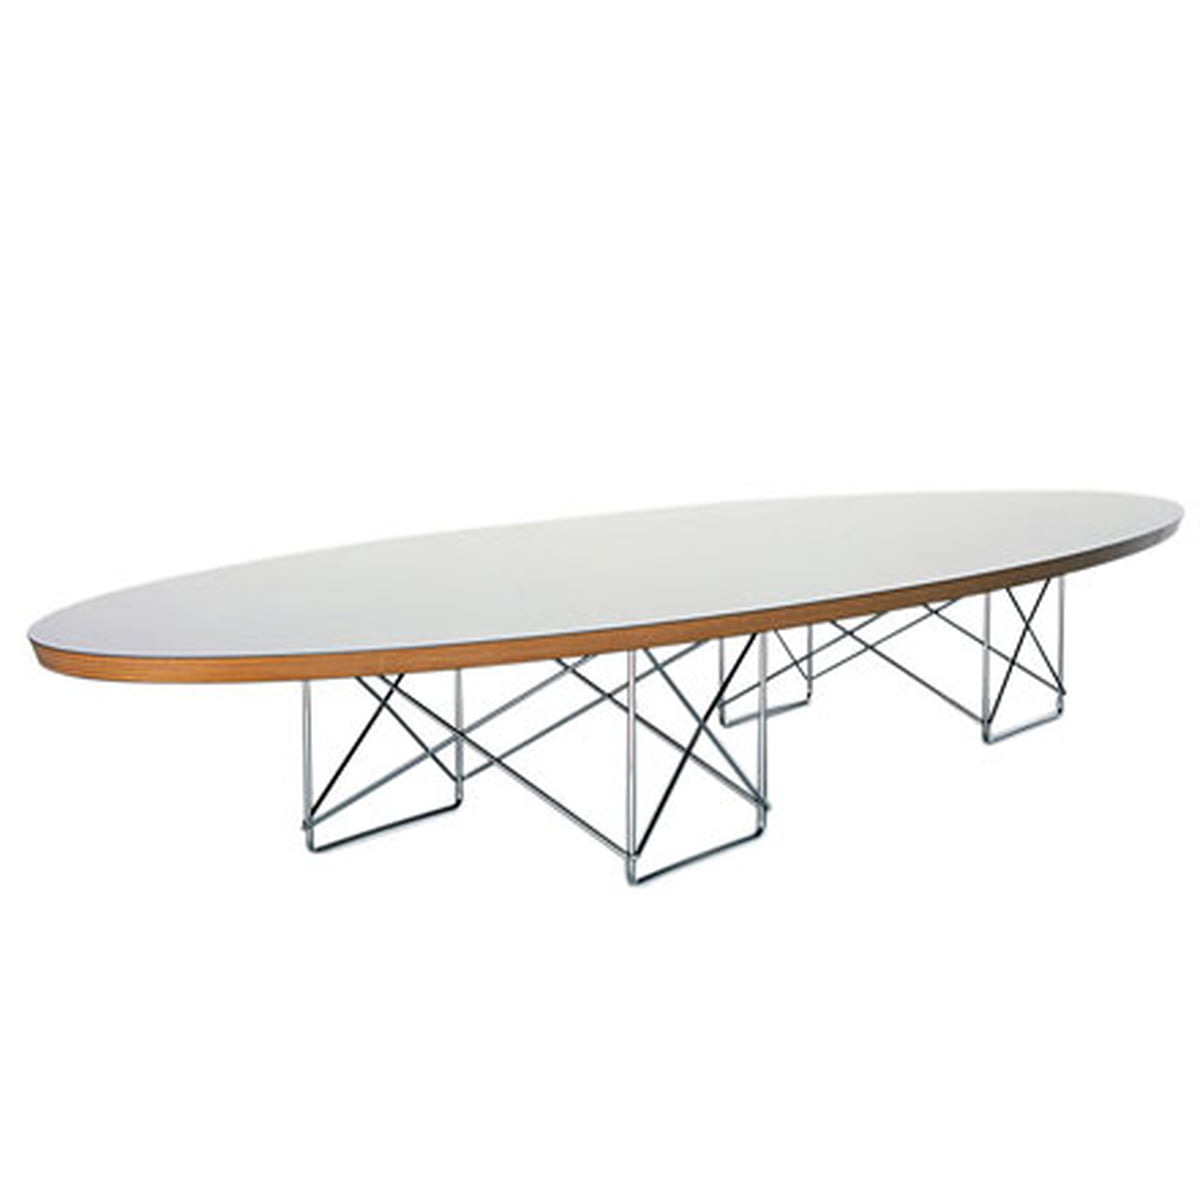 Merveilleux Elliptical Table